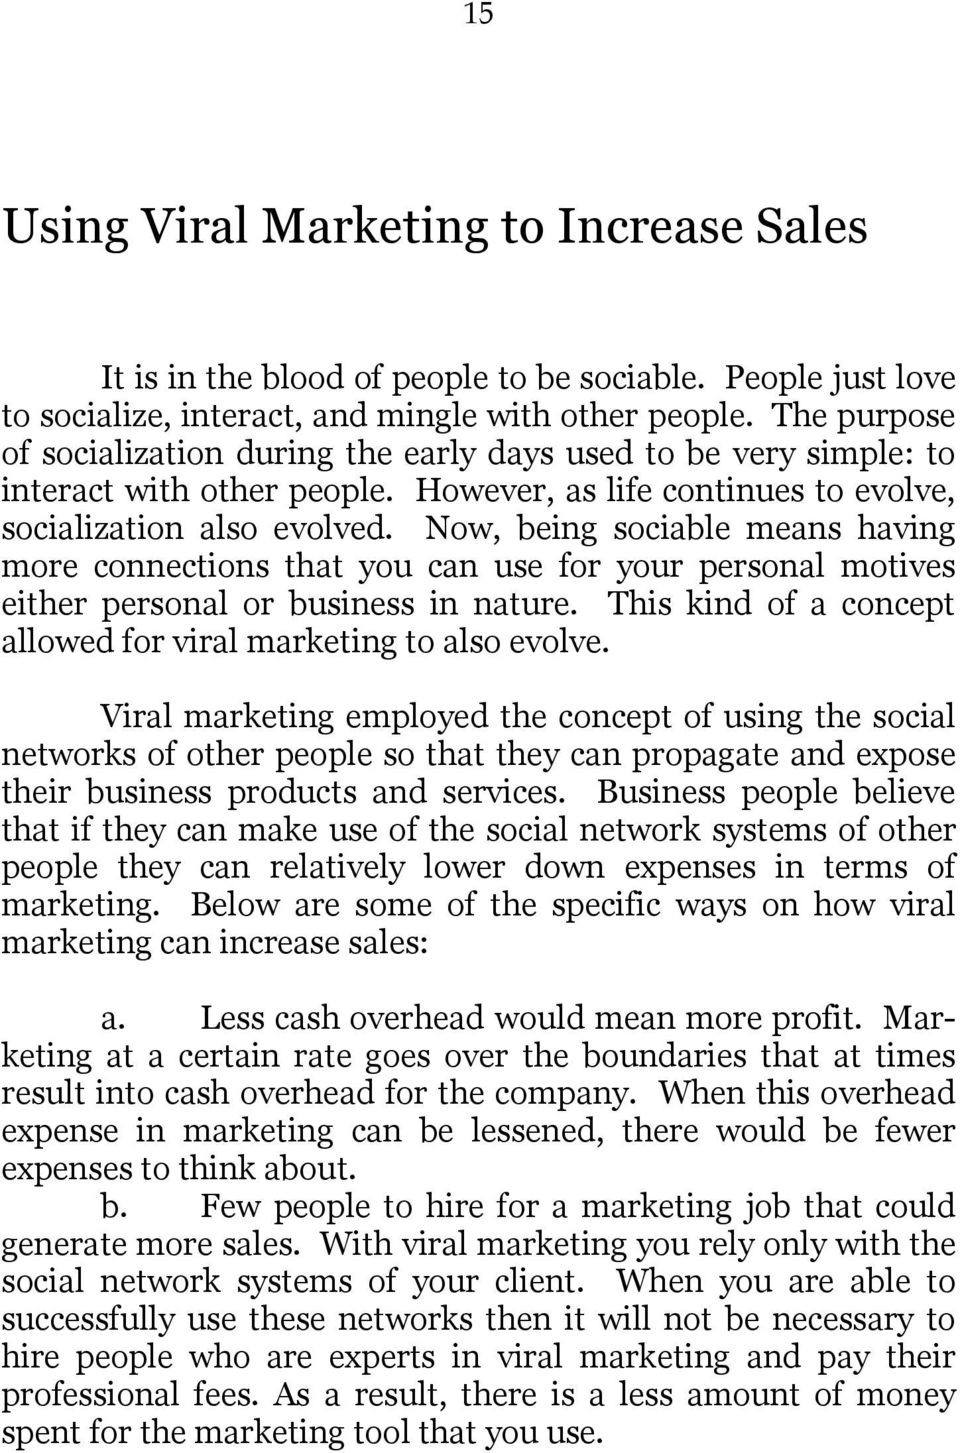 Now, being sociable means having more connections that you can use for your personal motives either personal or business in nature. This kind of a concept allowed for viral marketing to also evolve.